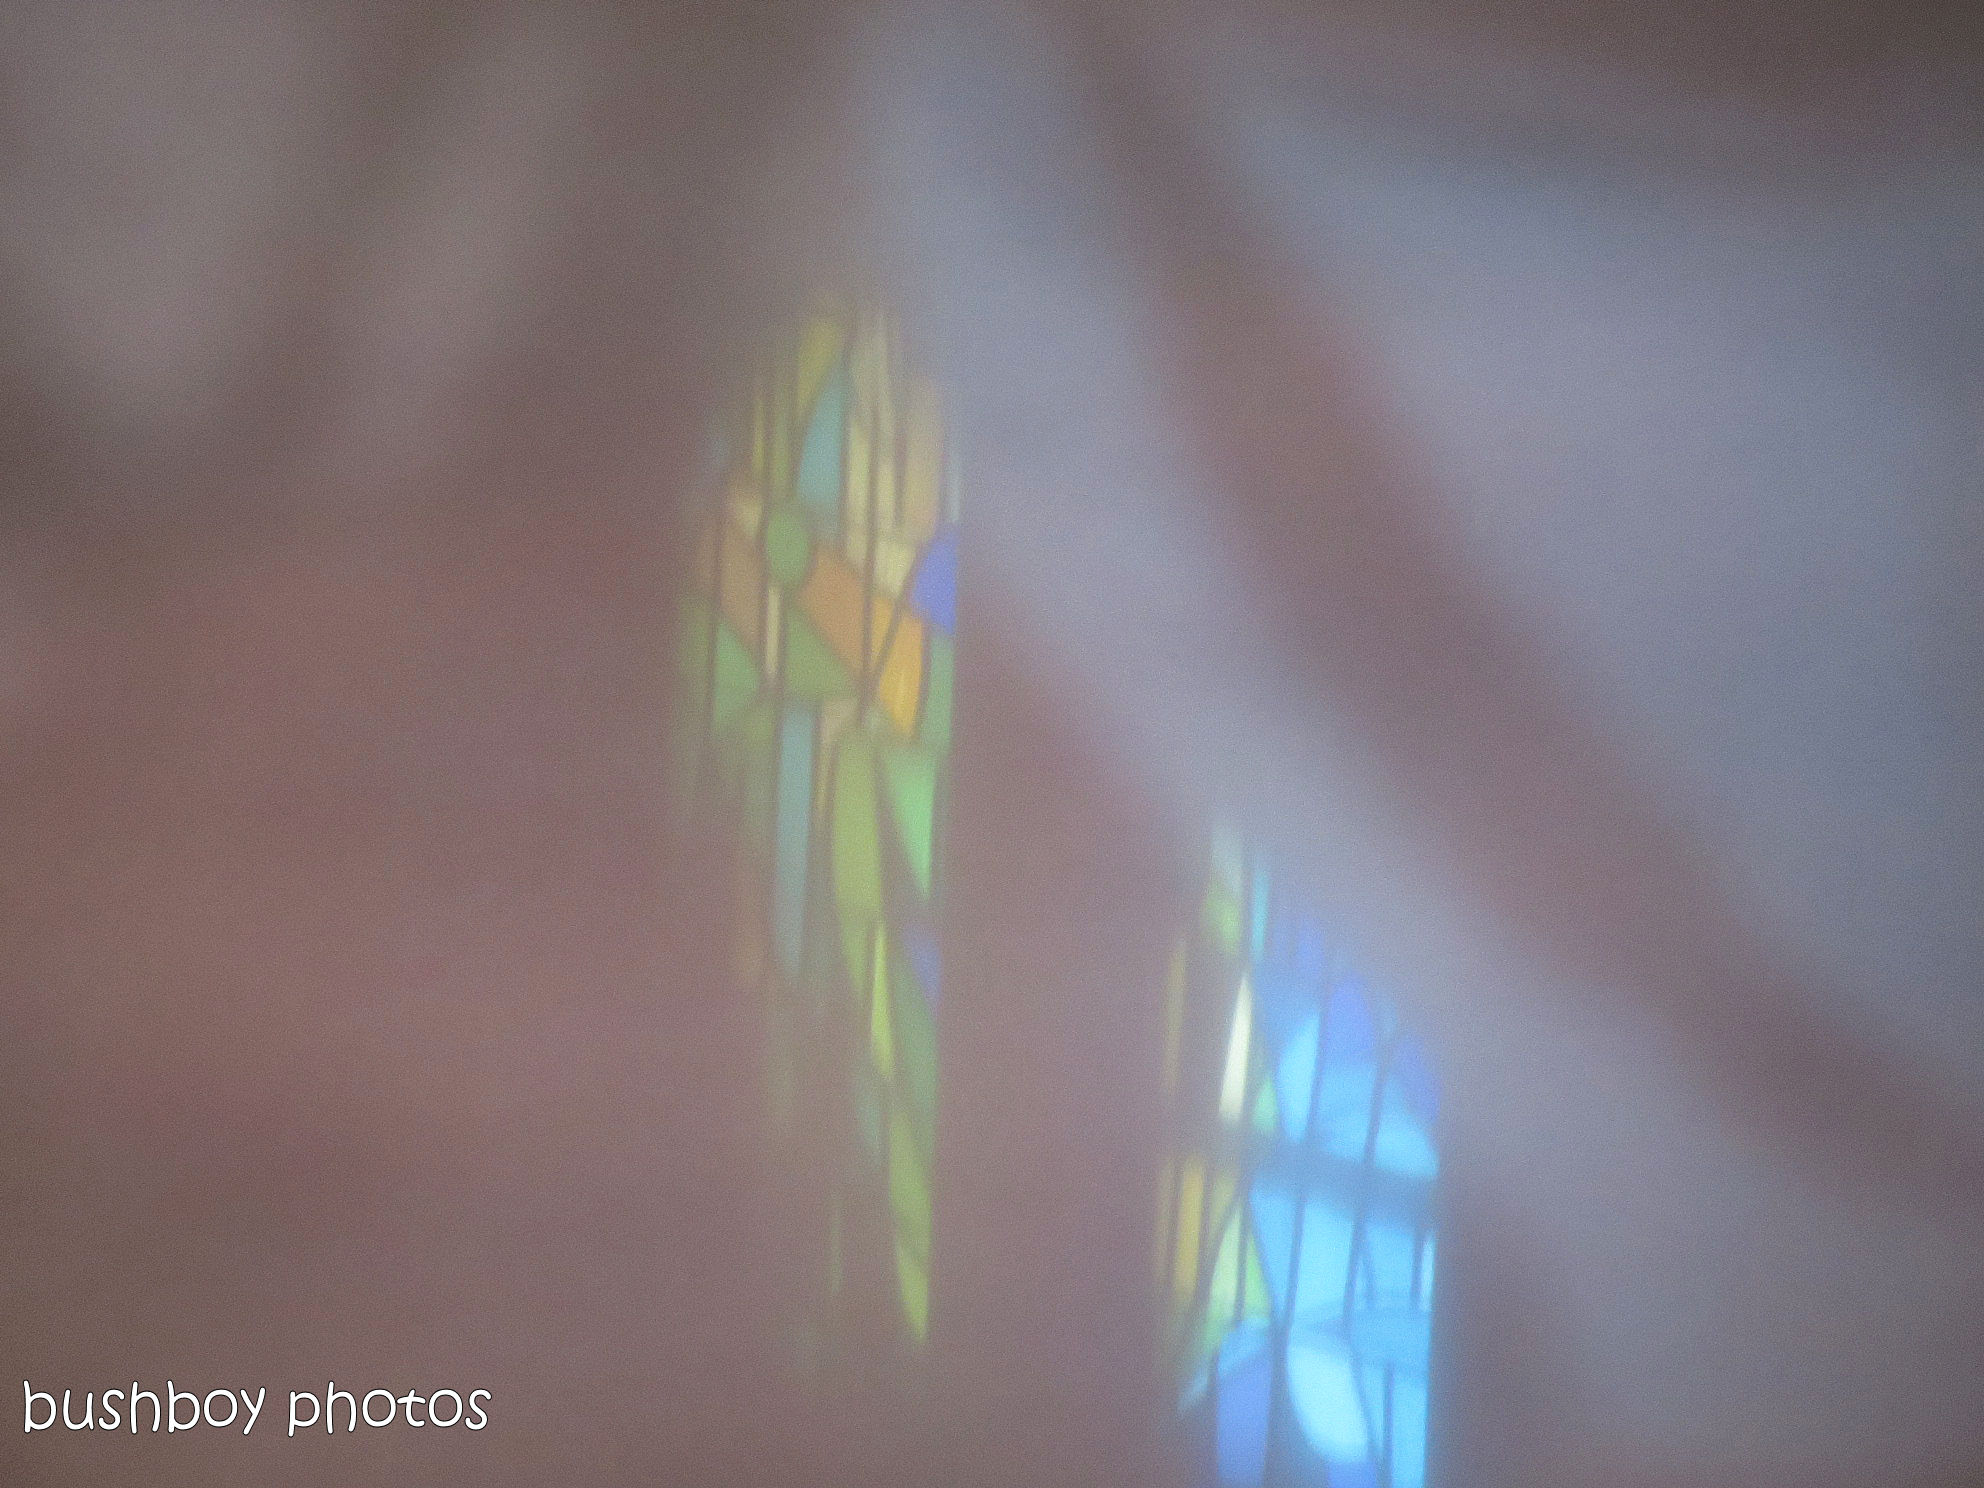 181031_blog challenge_reflection_sagrada familia_window1